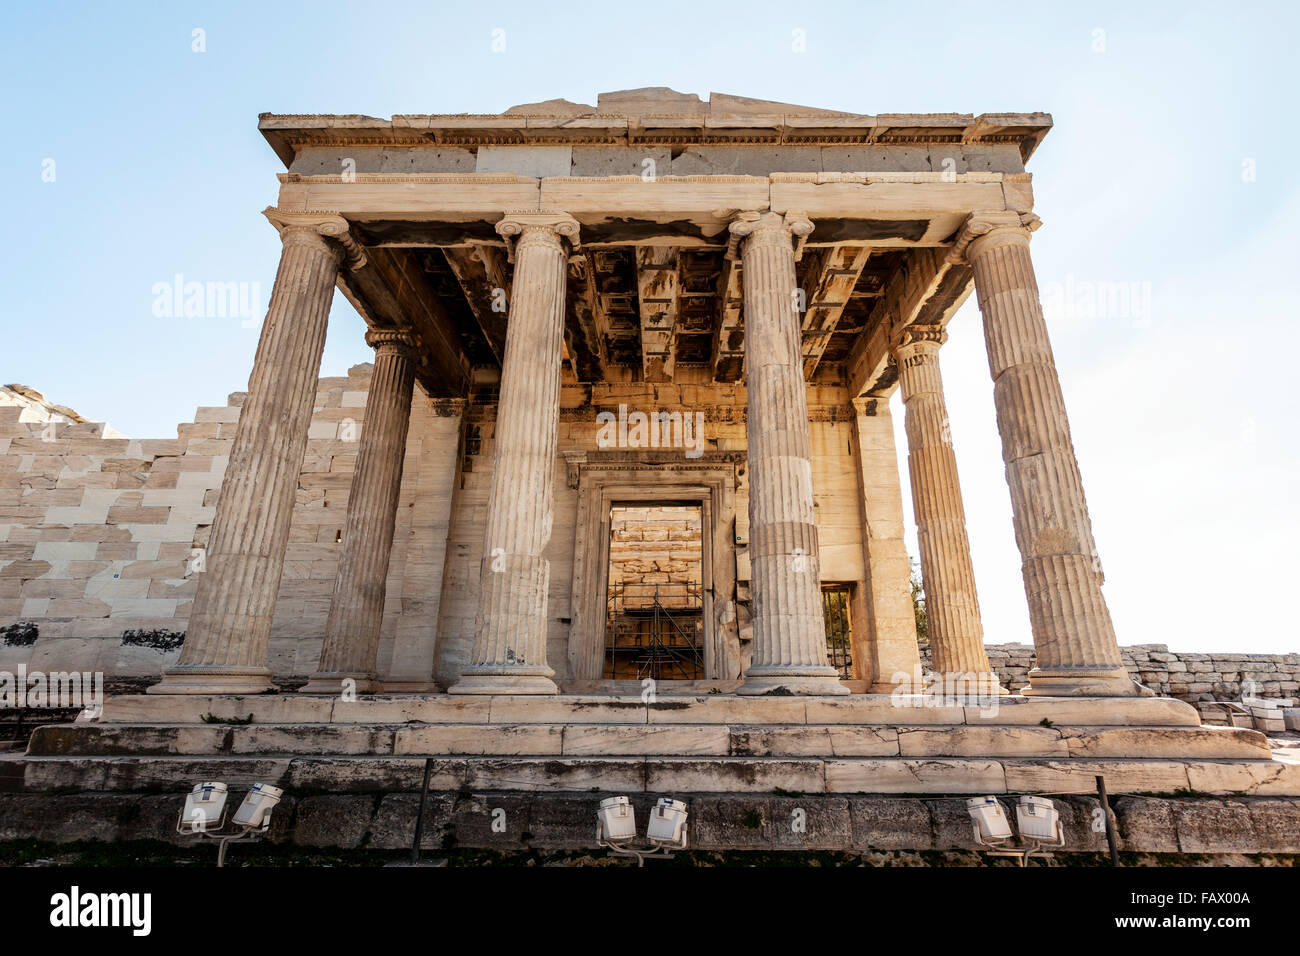 The Erechtheion, an ancient Greek temple on the North side of the Acropolis; Athens, Greece - Stock Image